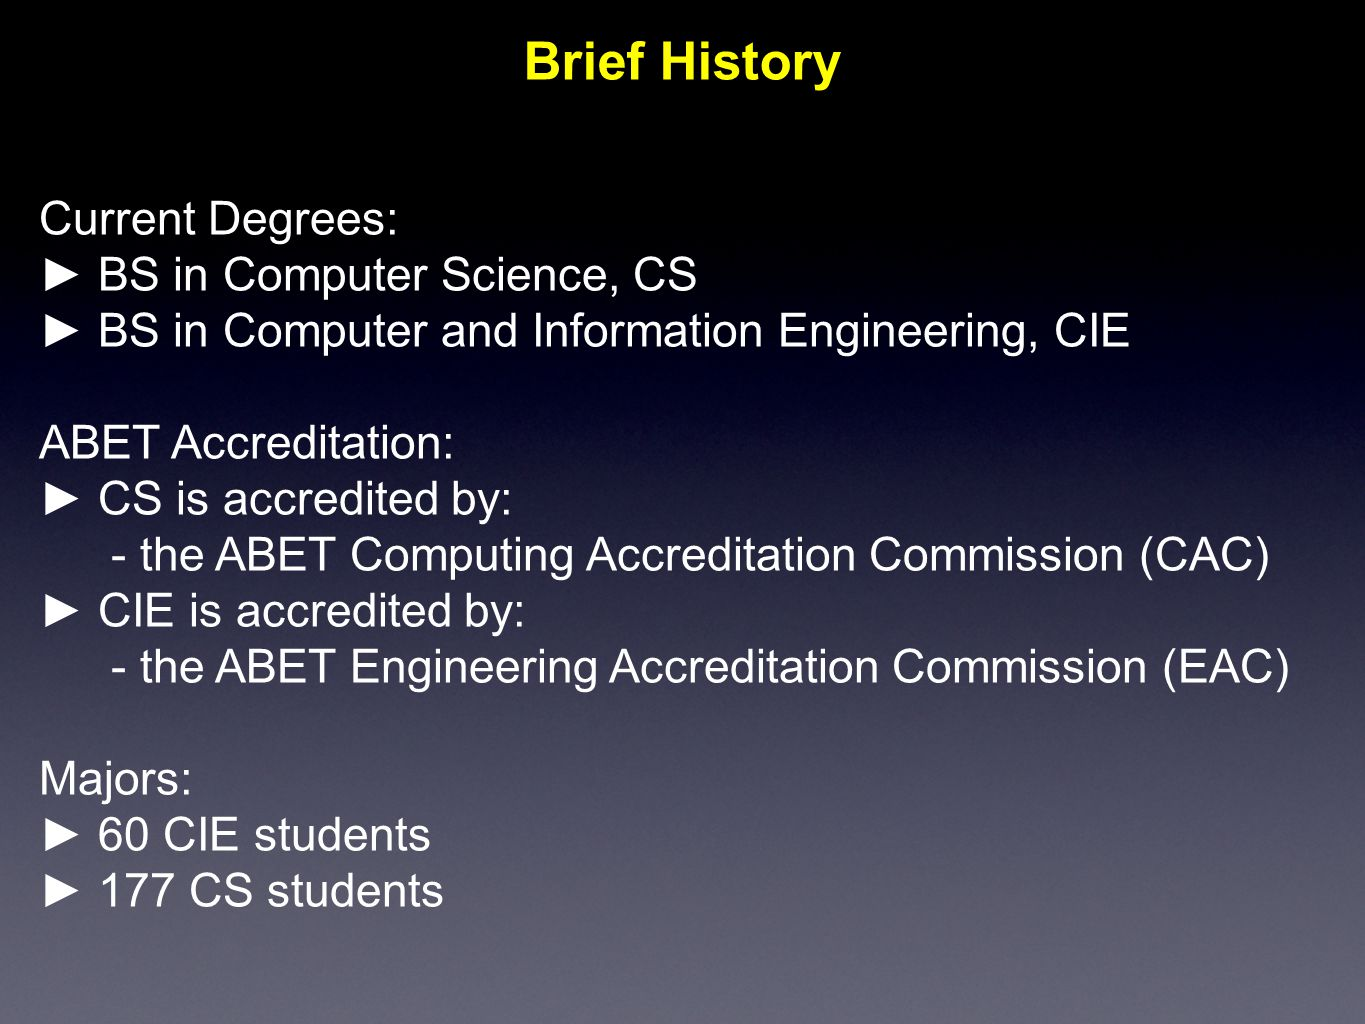 Brief History Current Degrees: ► BS in Computer Science, CS ► BS in Computer and Information Engineering, CIE ABET Accreditation: ► CS is accredited by:  the ABET Computing Accreditation Commission (CAC) ► CIE is accredited by:  the ABET Engineering Accreditation Commission (EAC) Majors: ► 60 CIE students ► 177 CS students